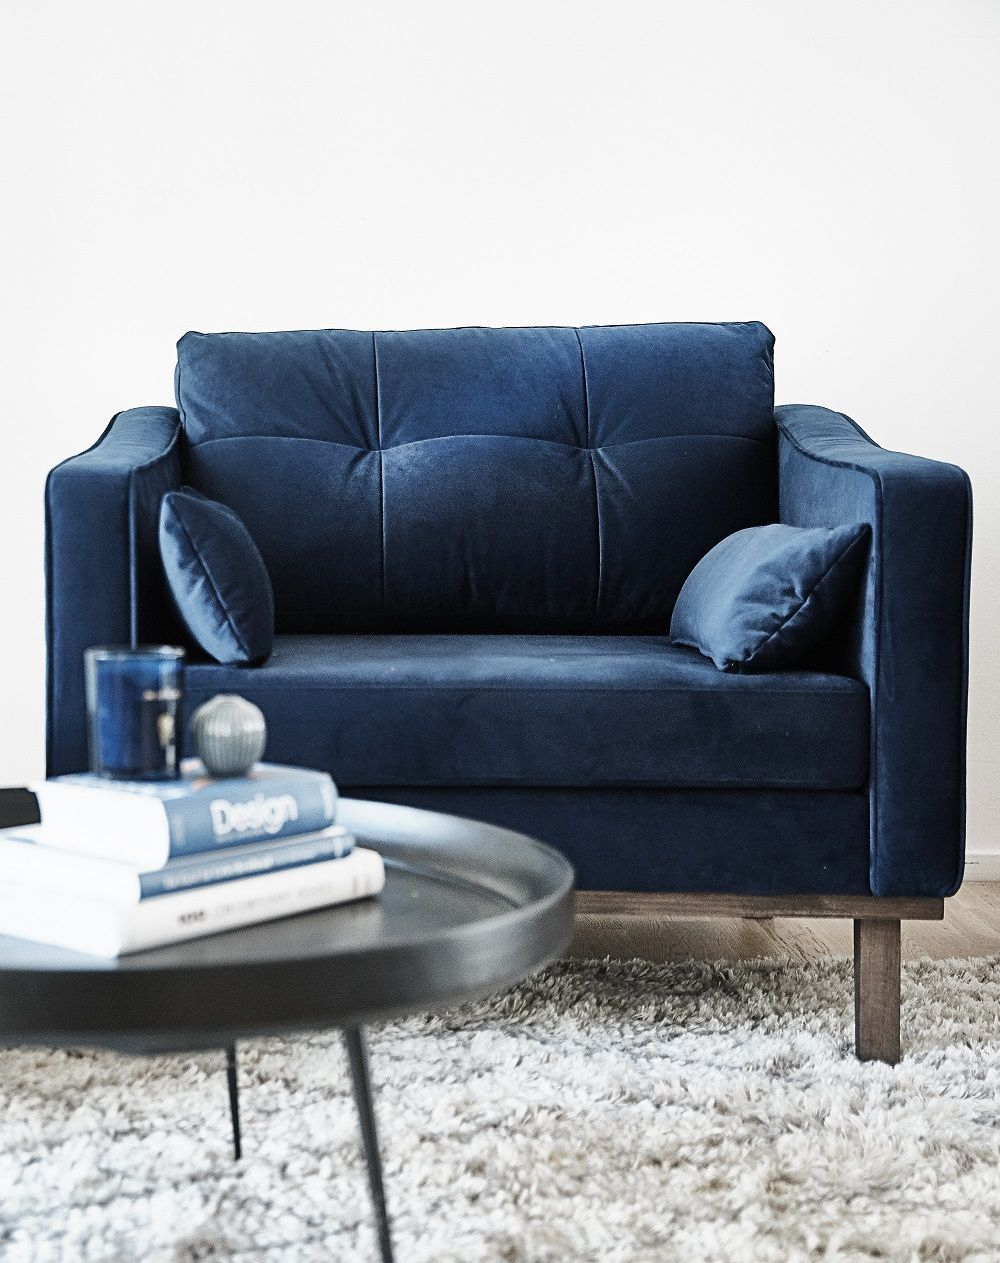 Couch Sessel Samt Sessel Alva In 2019 Sofas Stühle Sessel Furniture